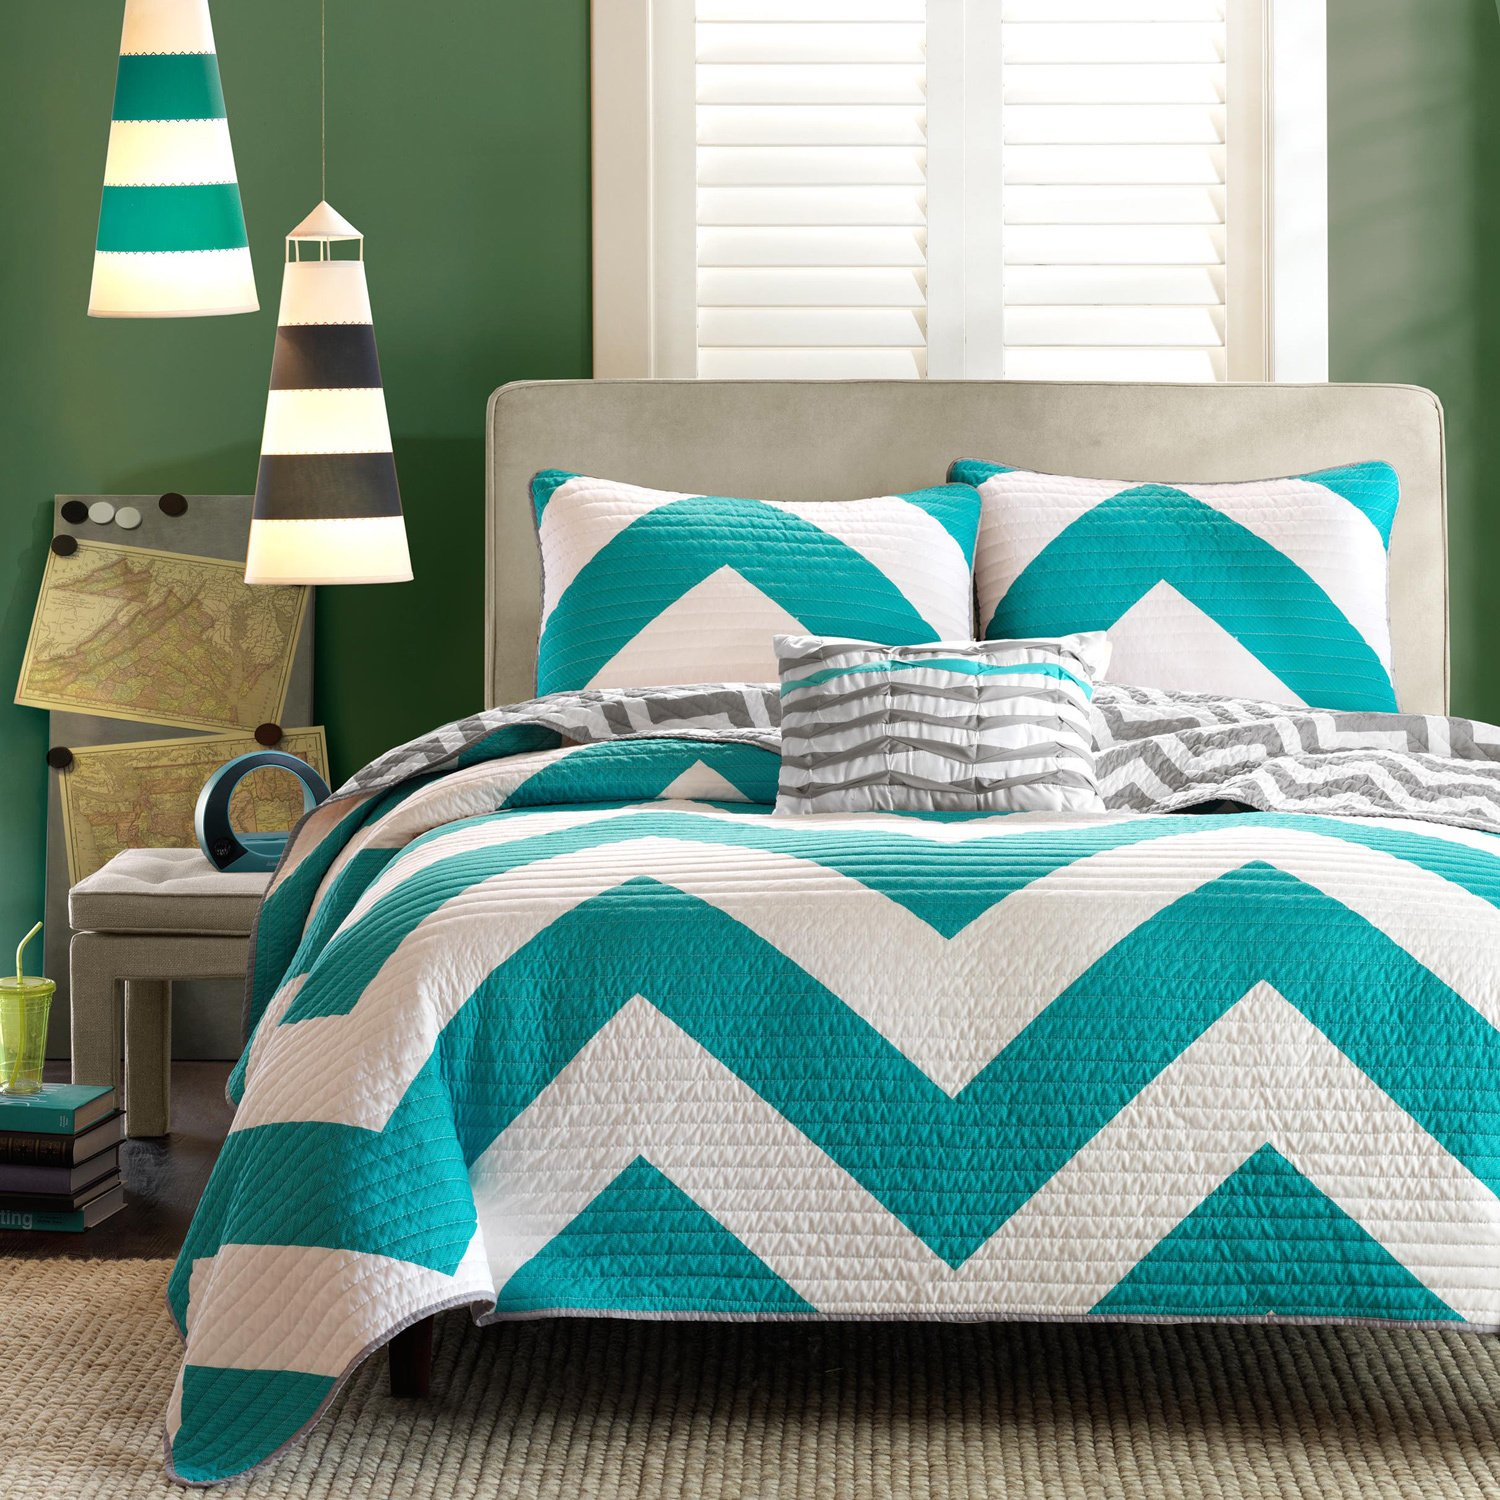 Bedspread designs texture - Amazon Com 4 Pc Zig Zag Reversible Chevron Bedspread Quilt With Matching Shams And Cushion Pillow Aqua Black Pink Teal Grey Home Kitchen